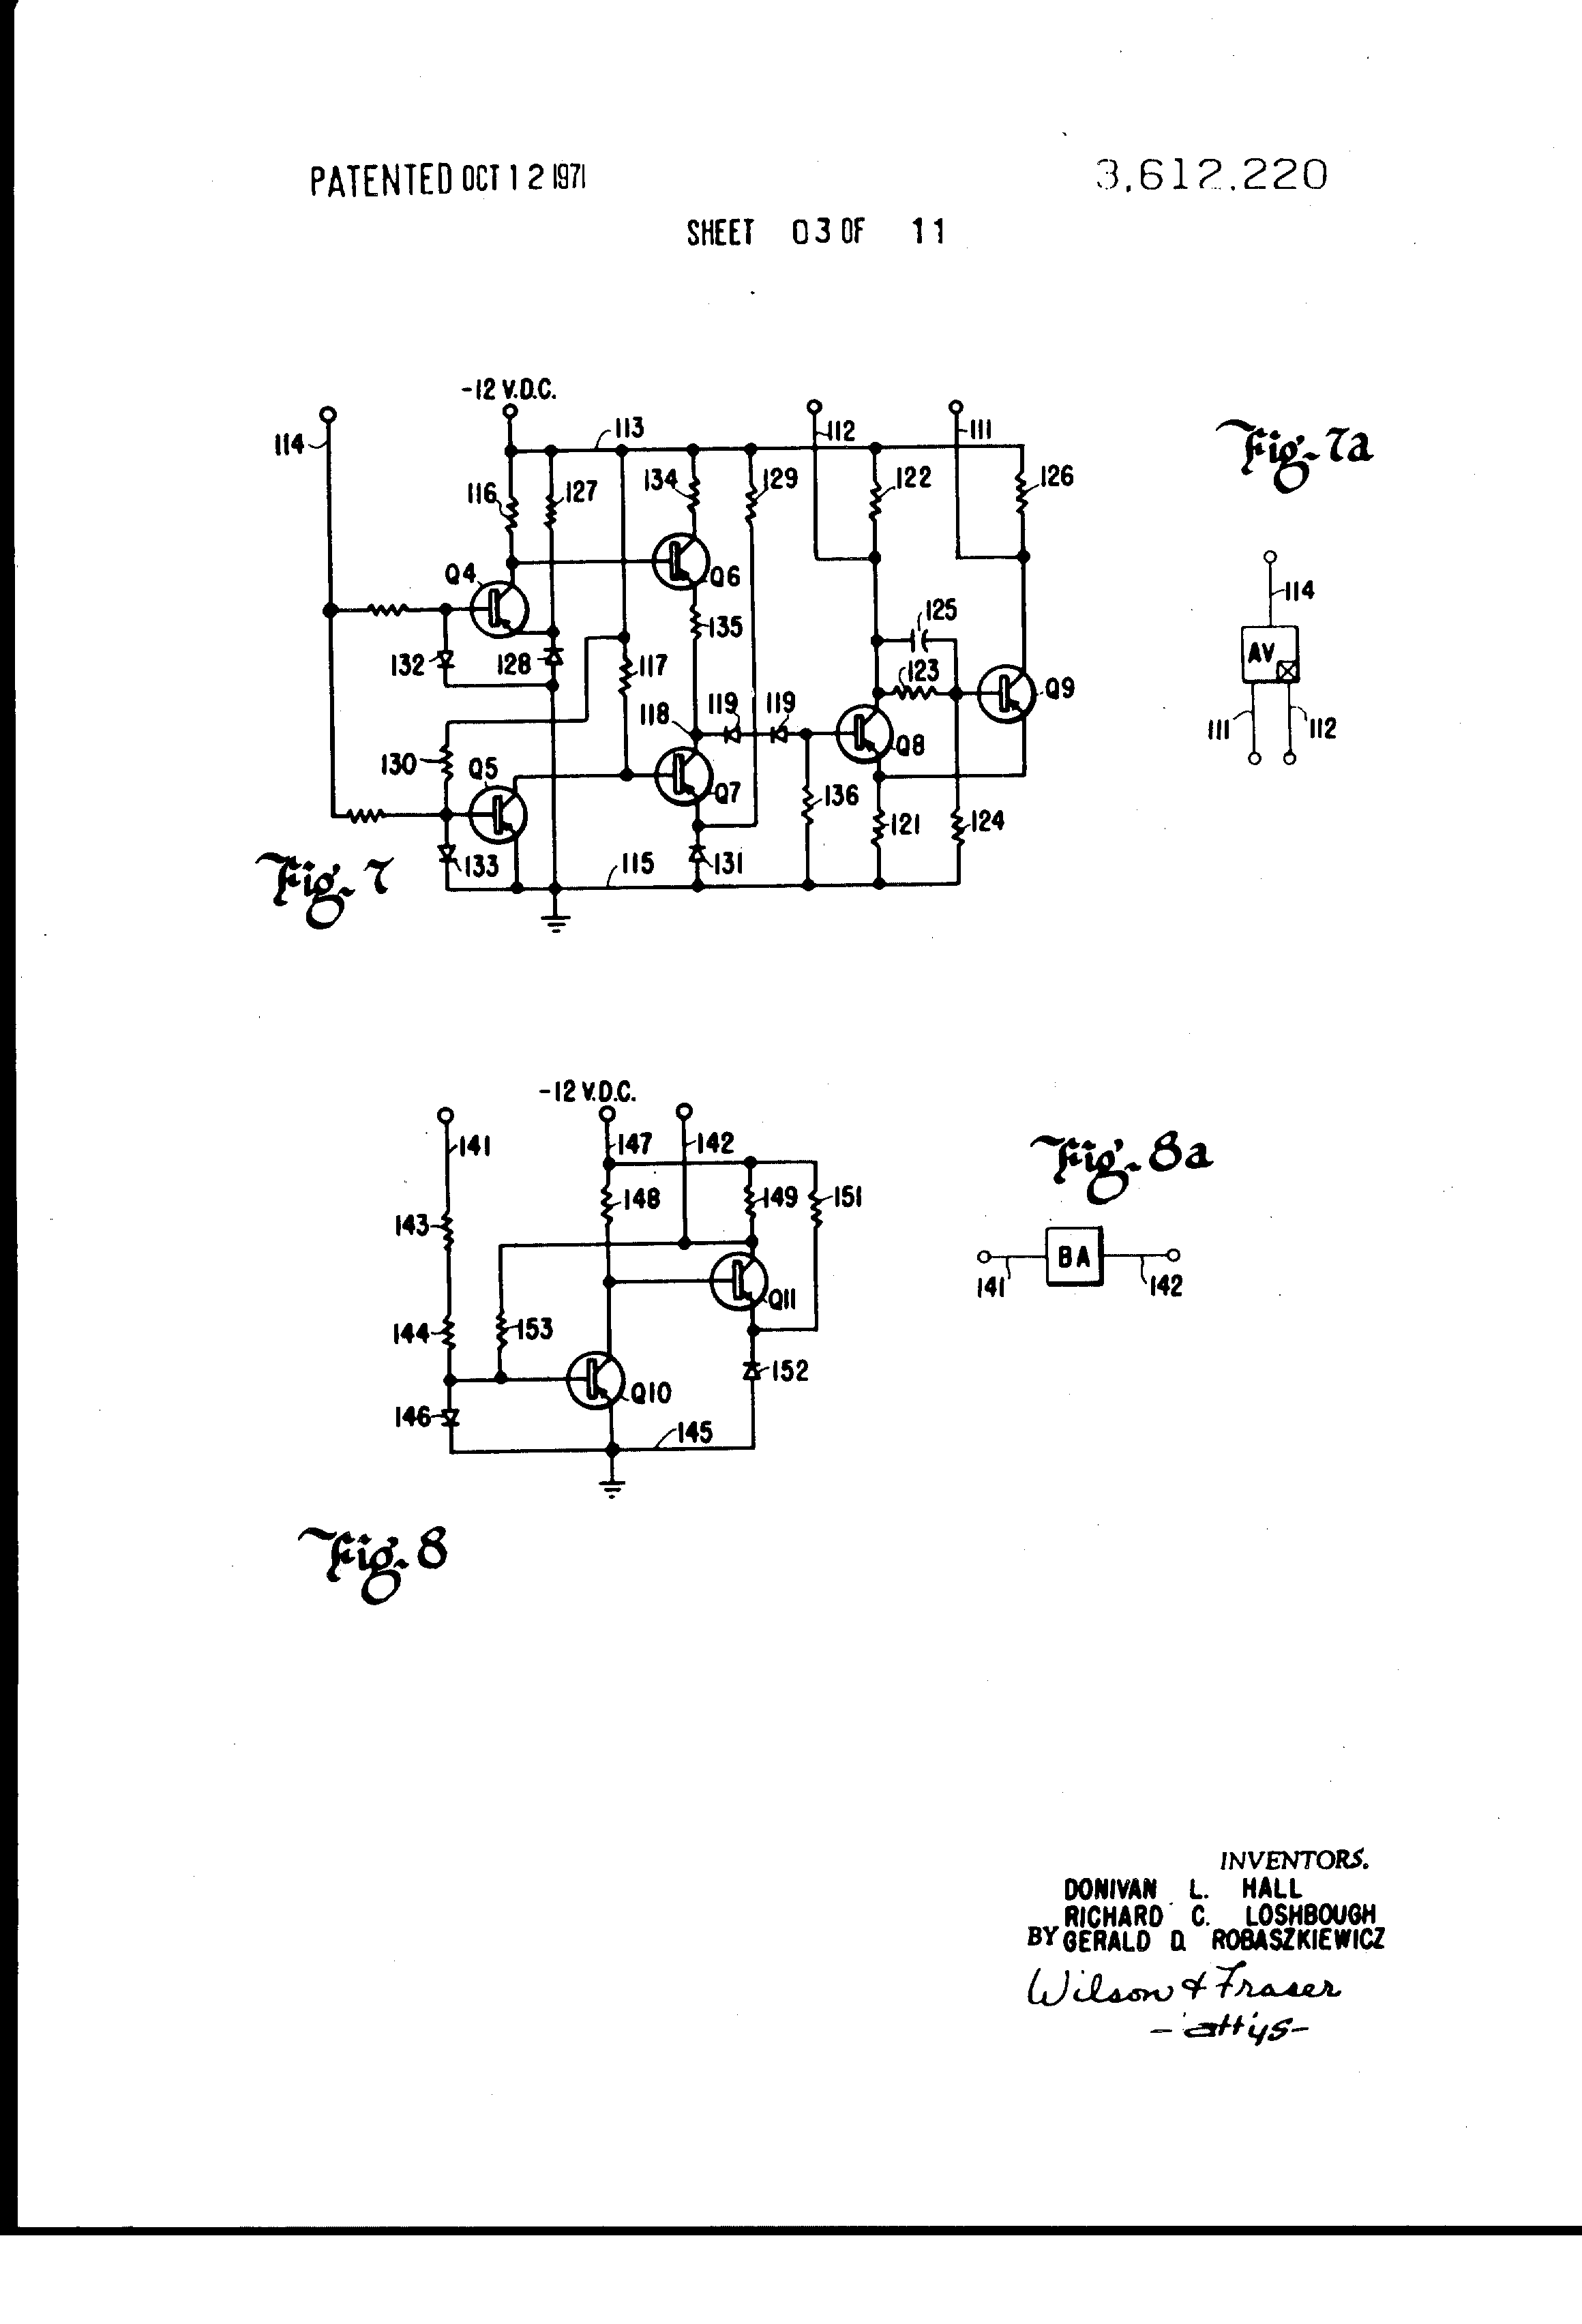 Marantec Comfort 220 Wiring Diagram 35 Images Garage Door Opener Us3612220 3 Patent Elevator Control Google Patents At Highcare